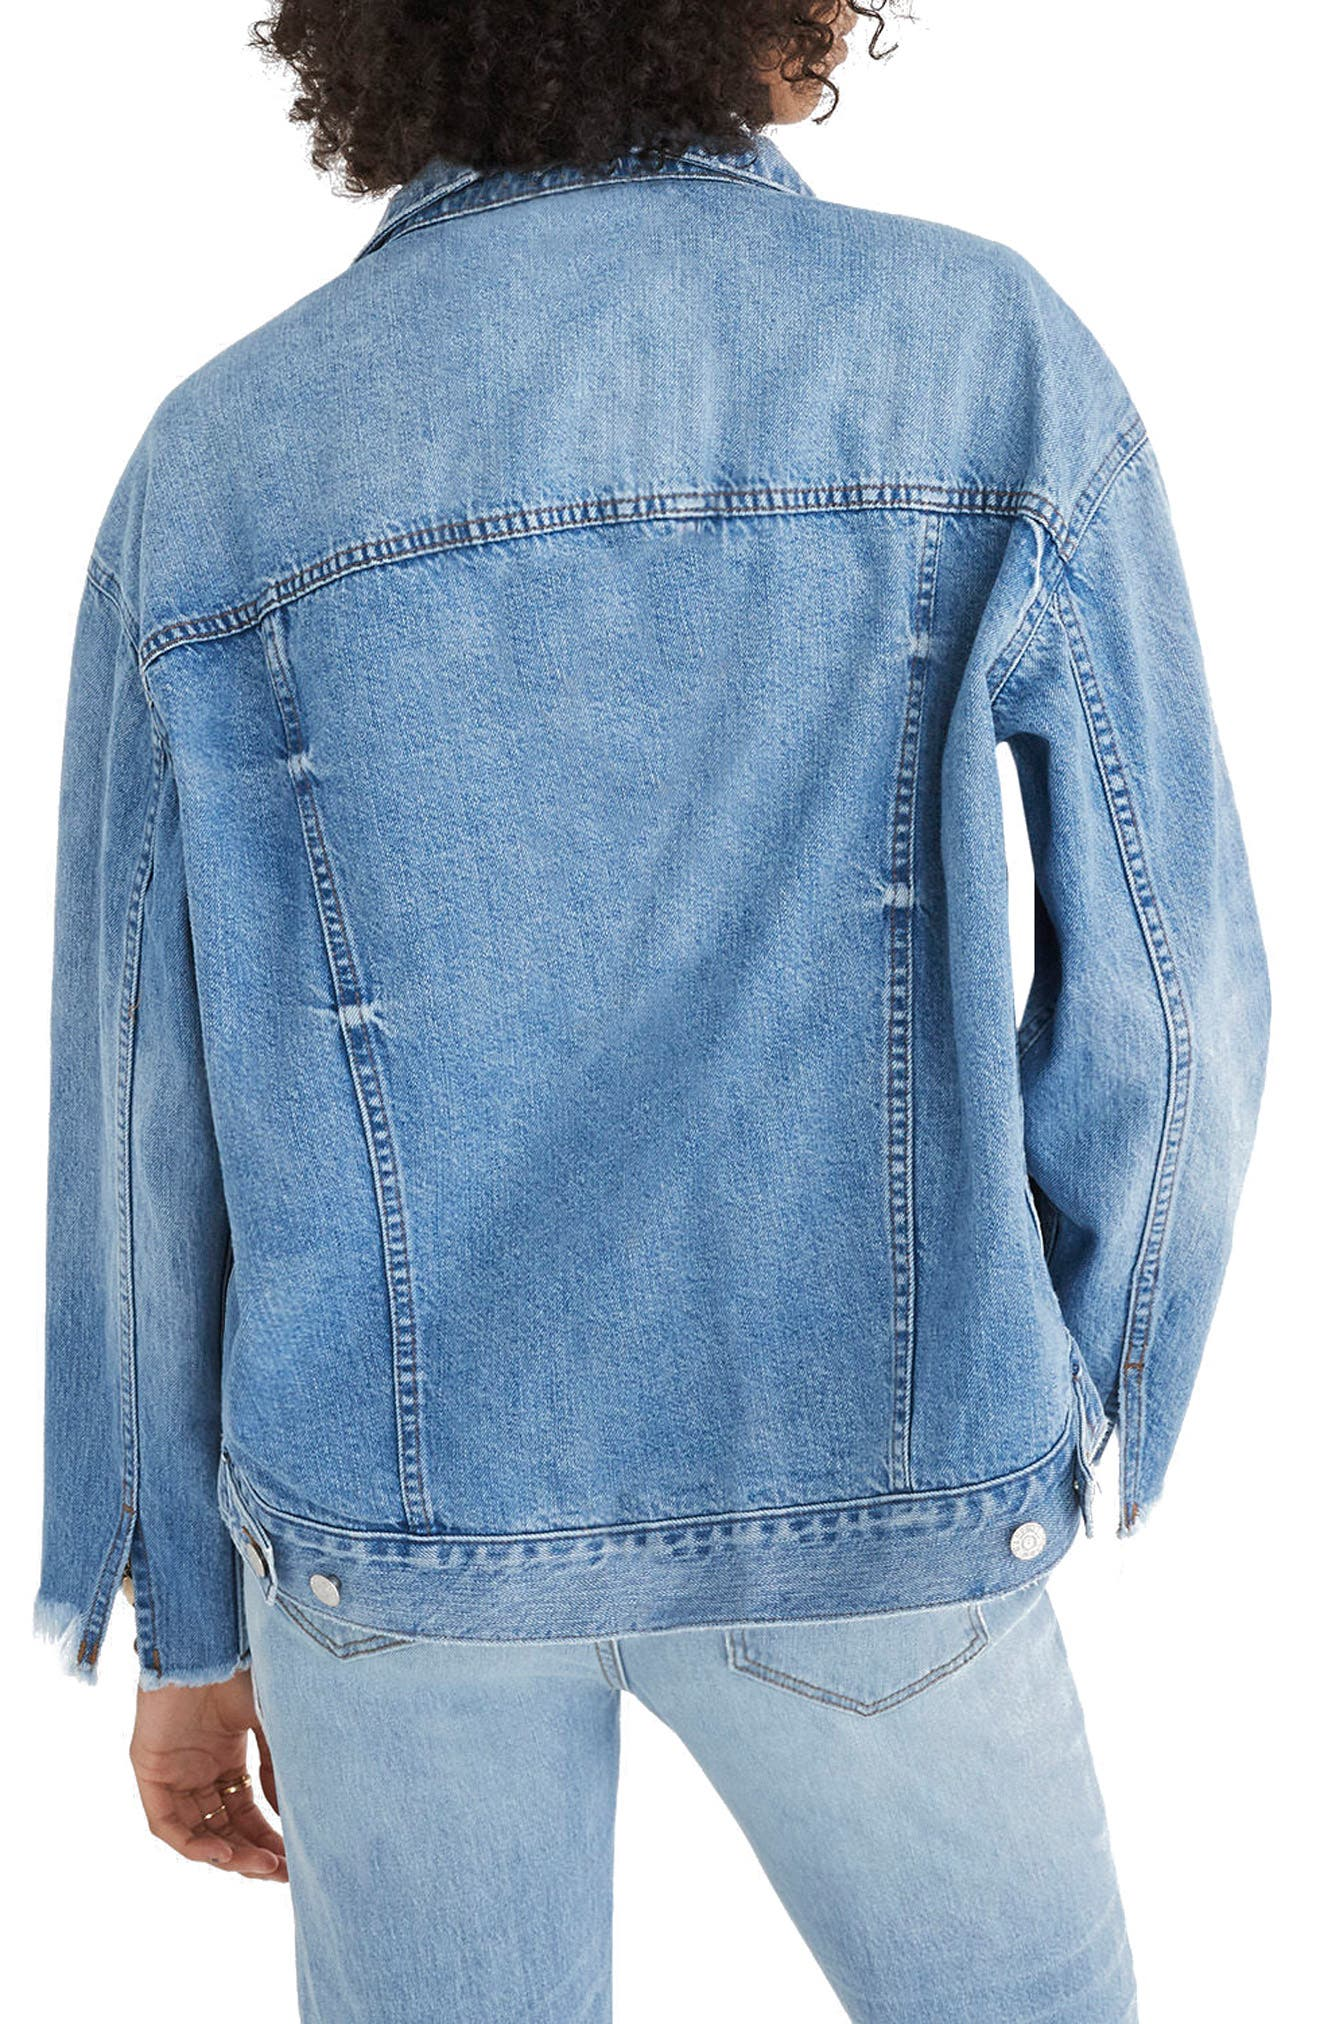 Reconstructed Jean Jacket,                             Alternate thumbnail 3, color,                             Beecher Wash